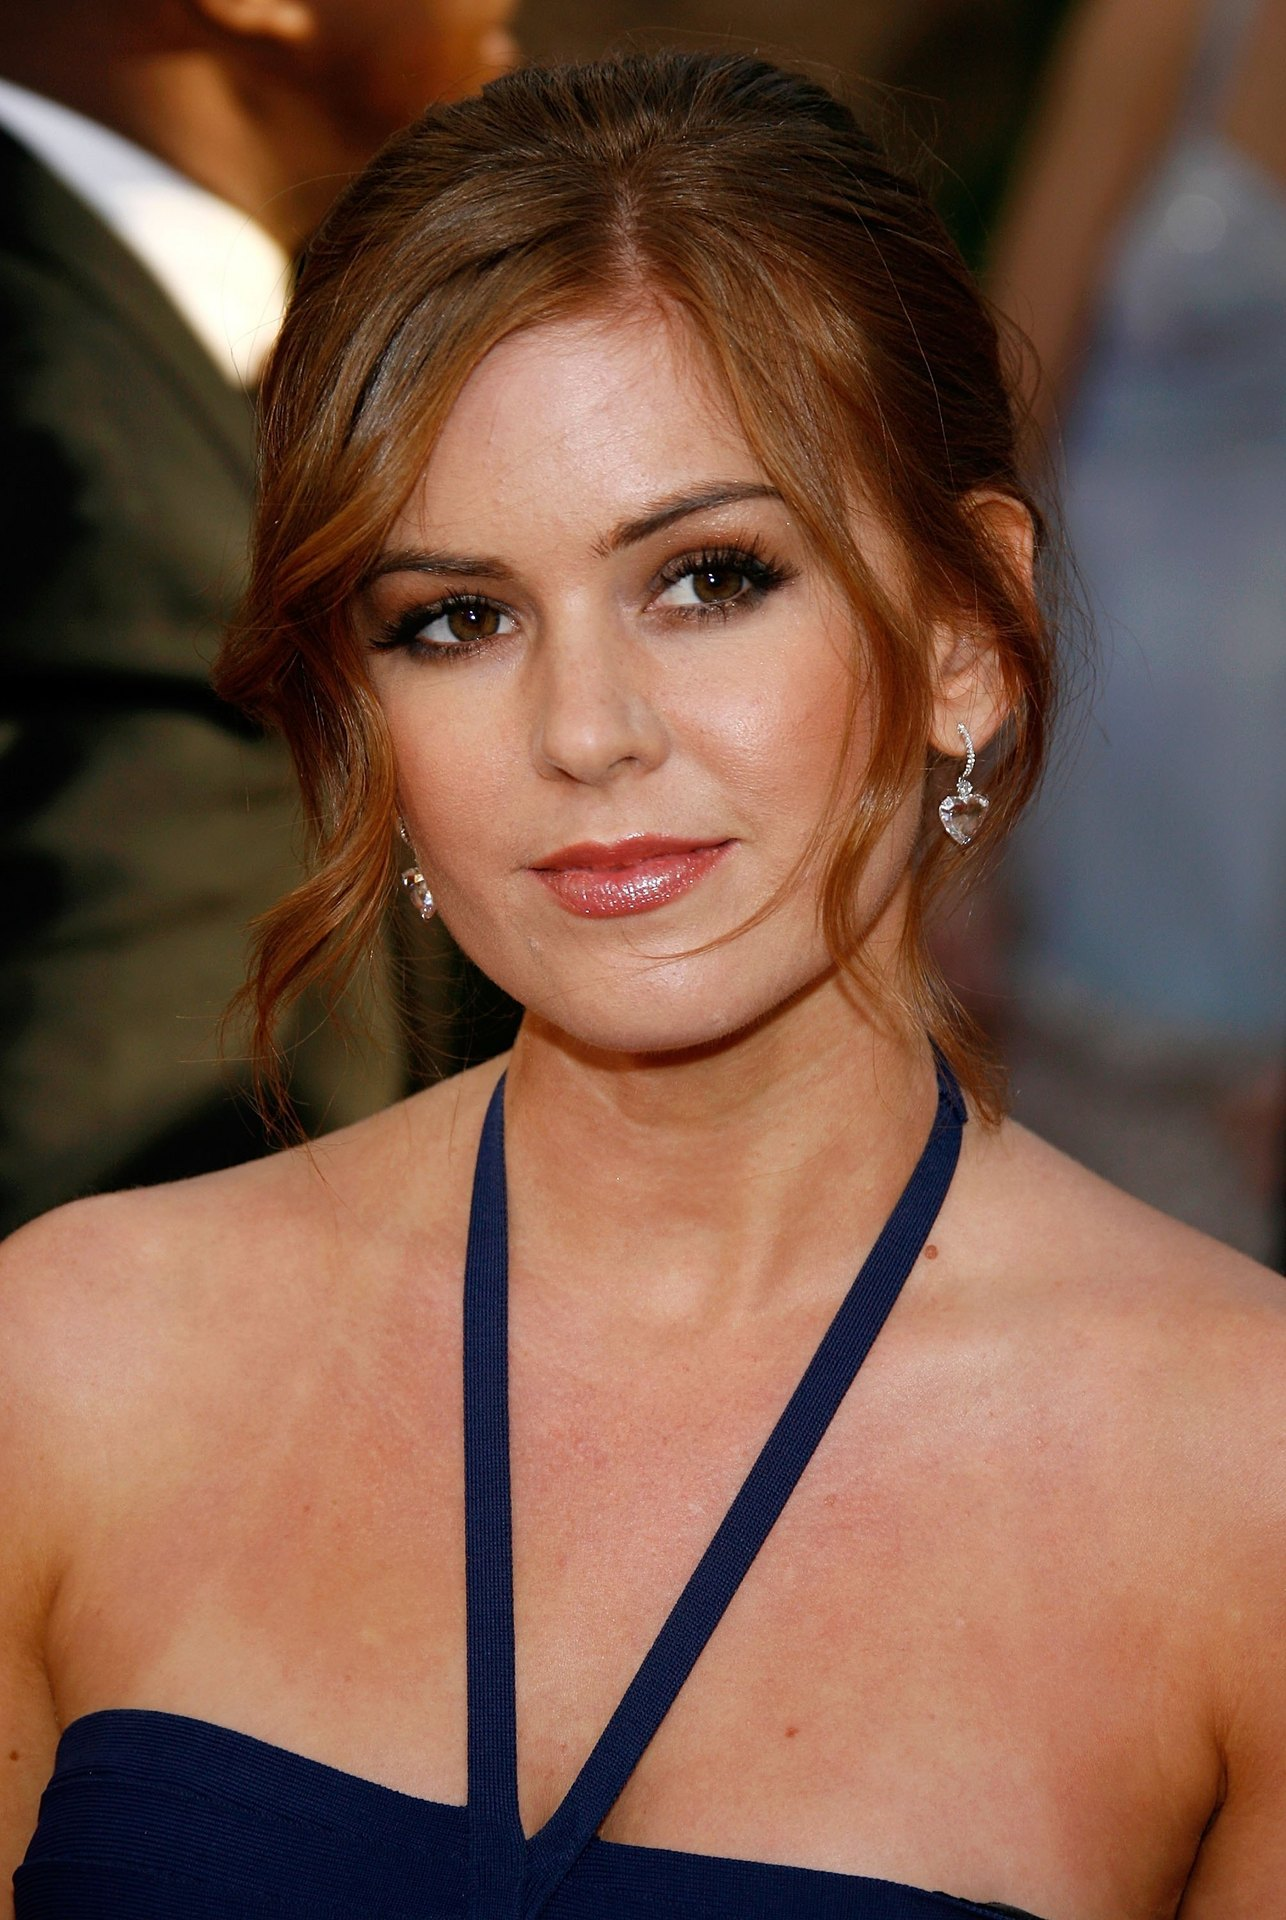 Isla Fisher download wallpaper